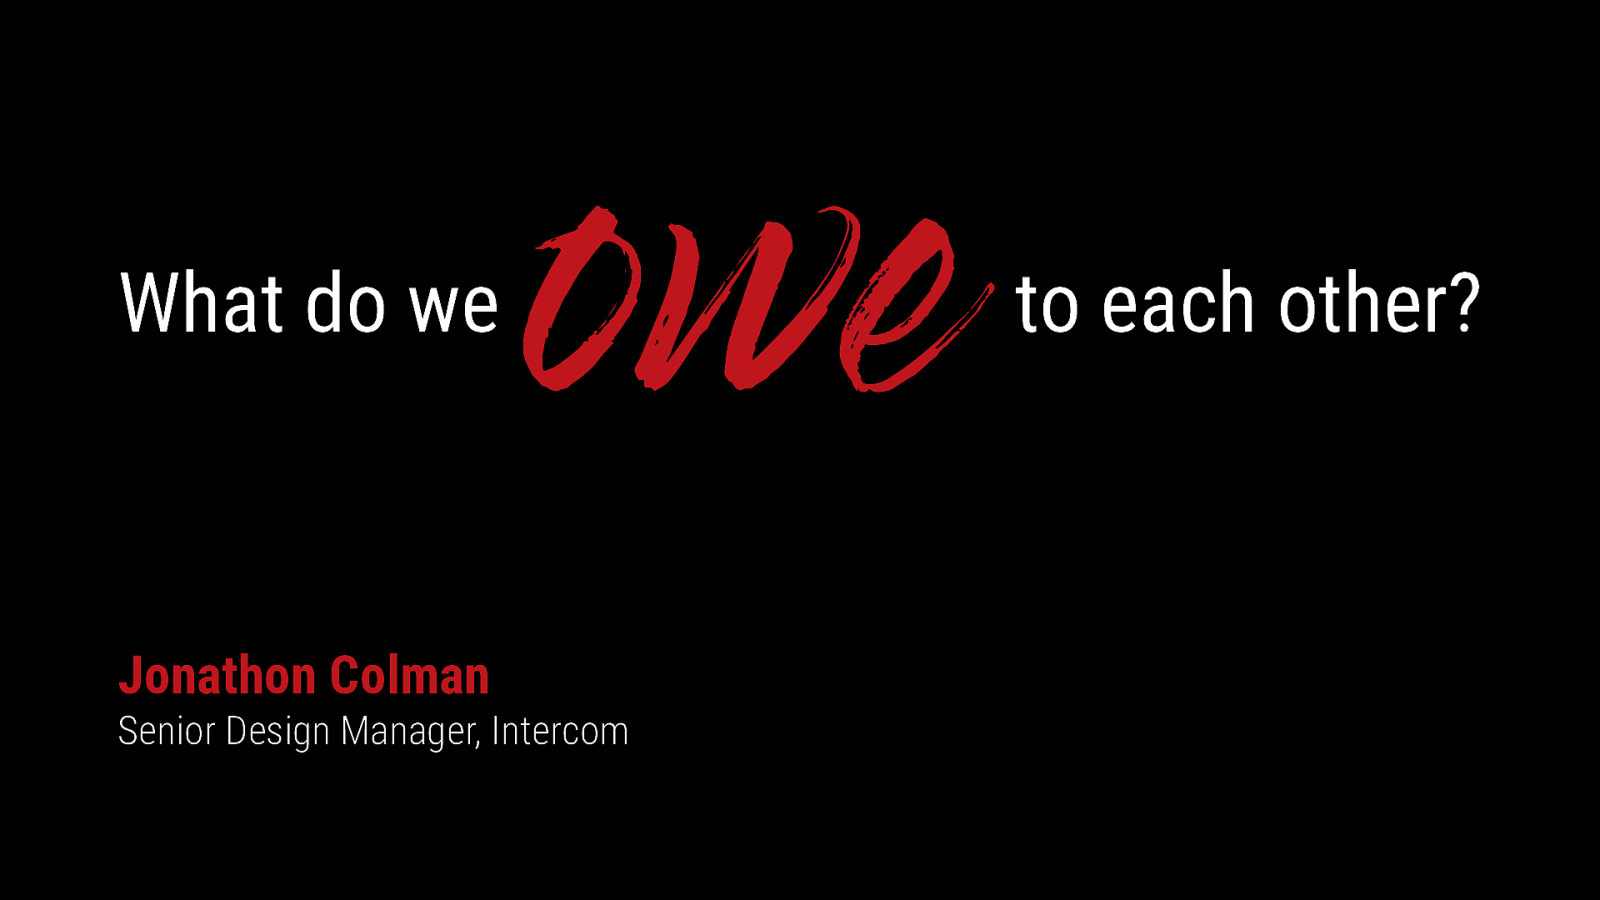 What do we owe to each other?